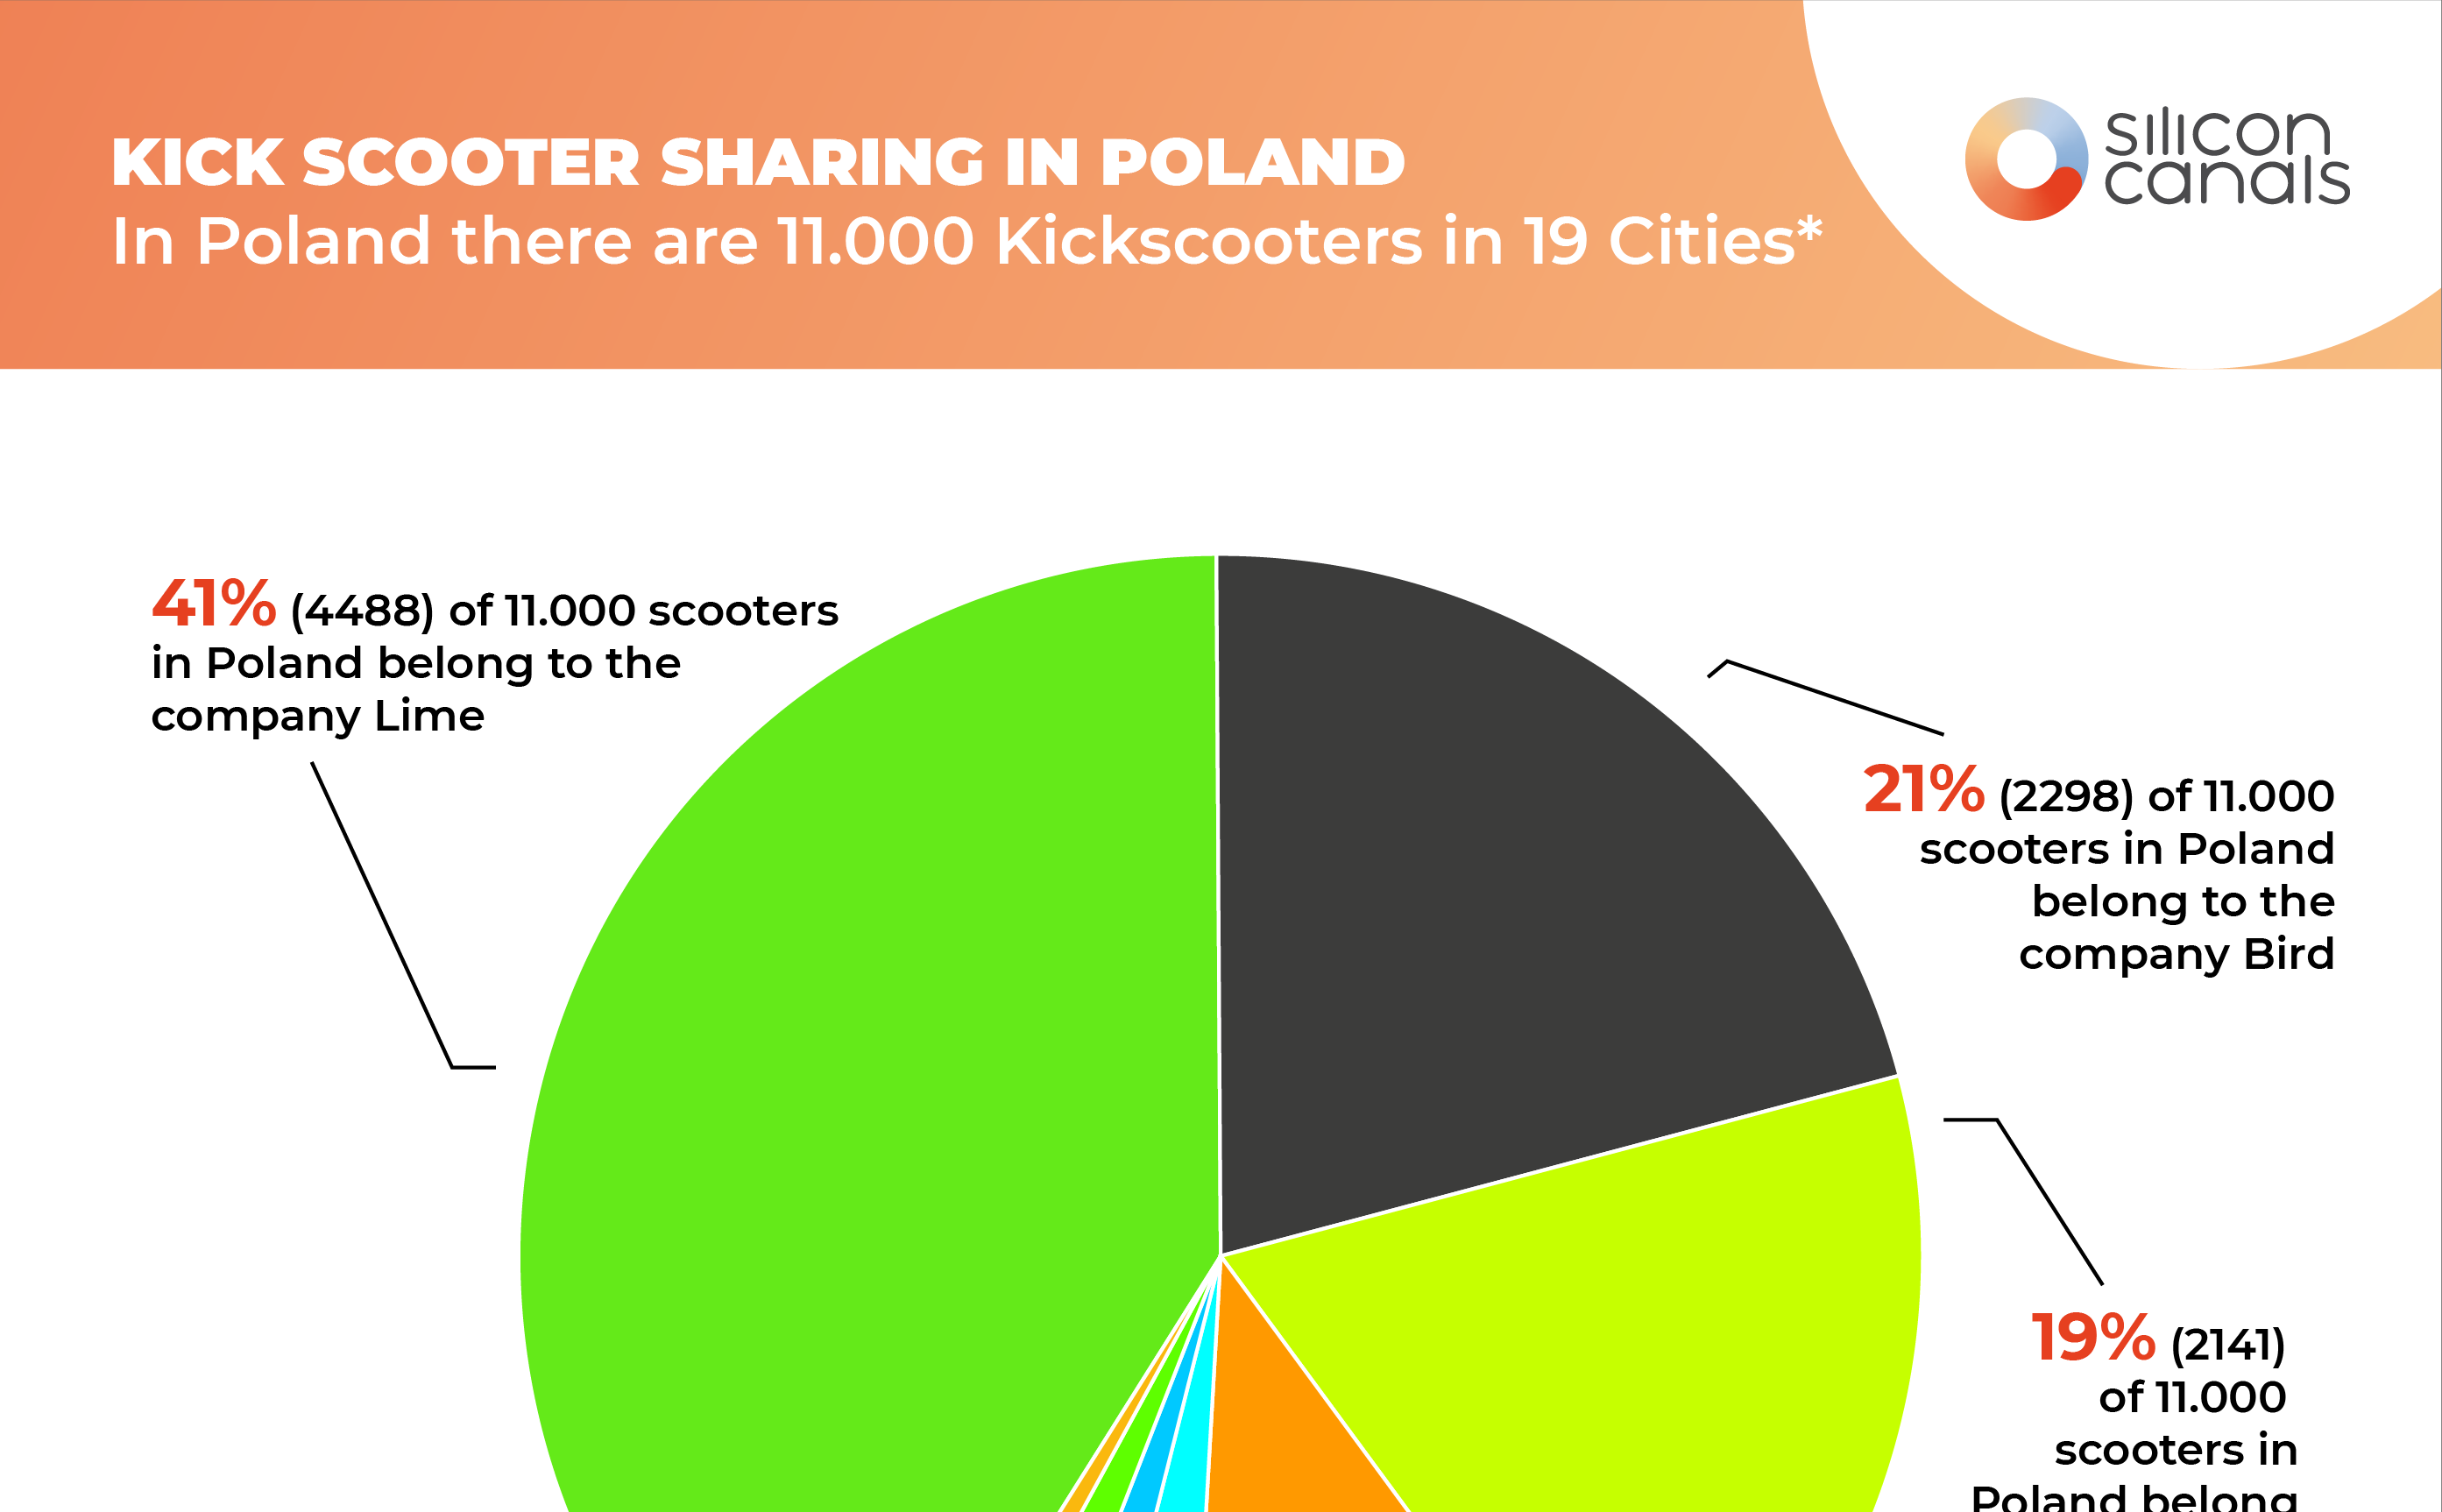 8 hottest kick scooter sharing startups leading the race in Poland this year